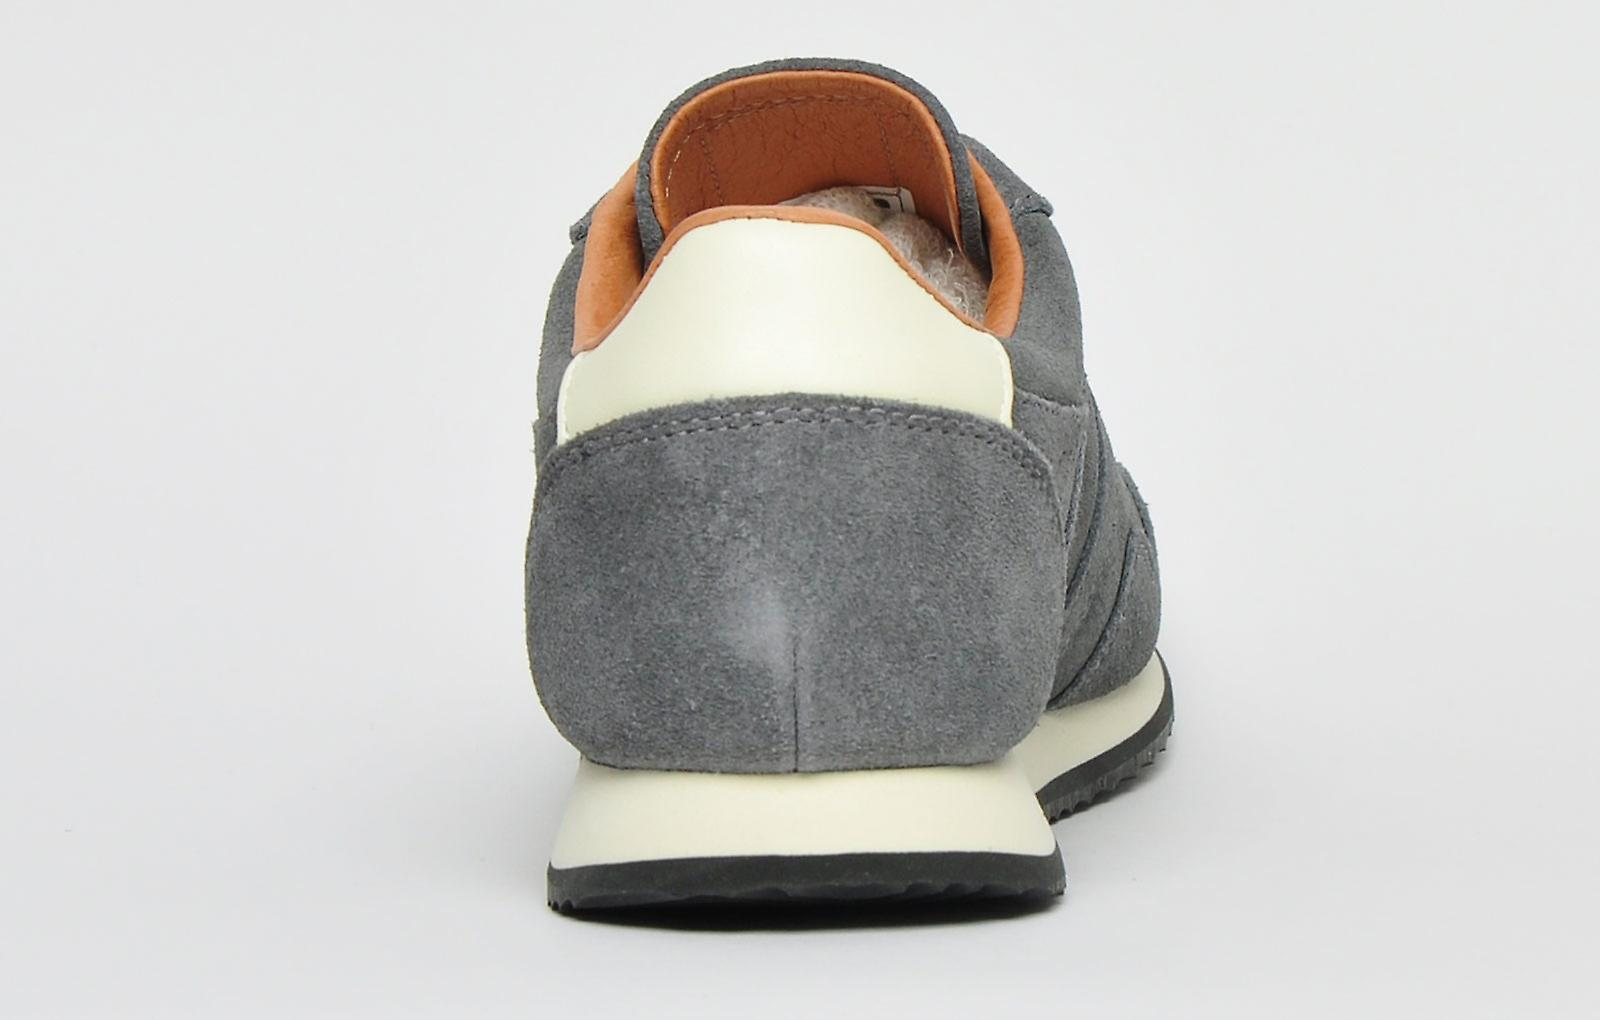 Gola Classics Track Suede 317 Made In England Ltd Edition Charcoal Grey / Stone / Tan